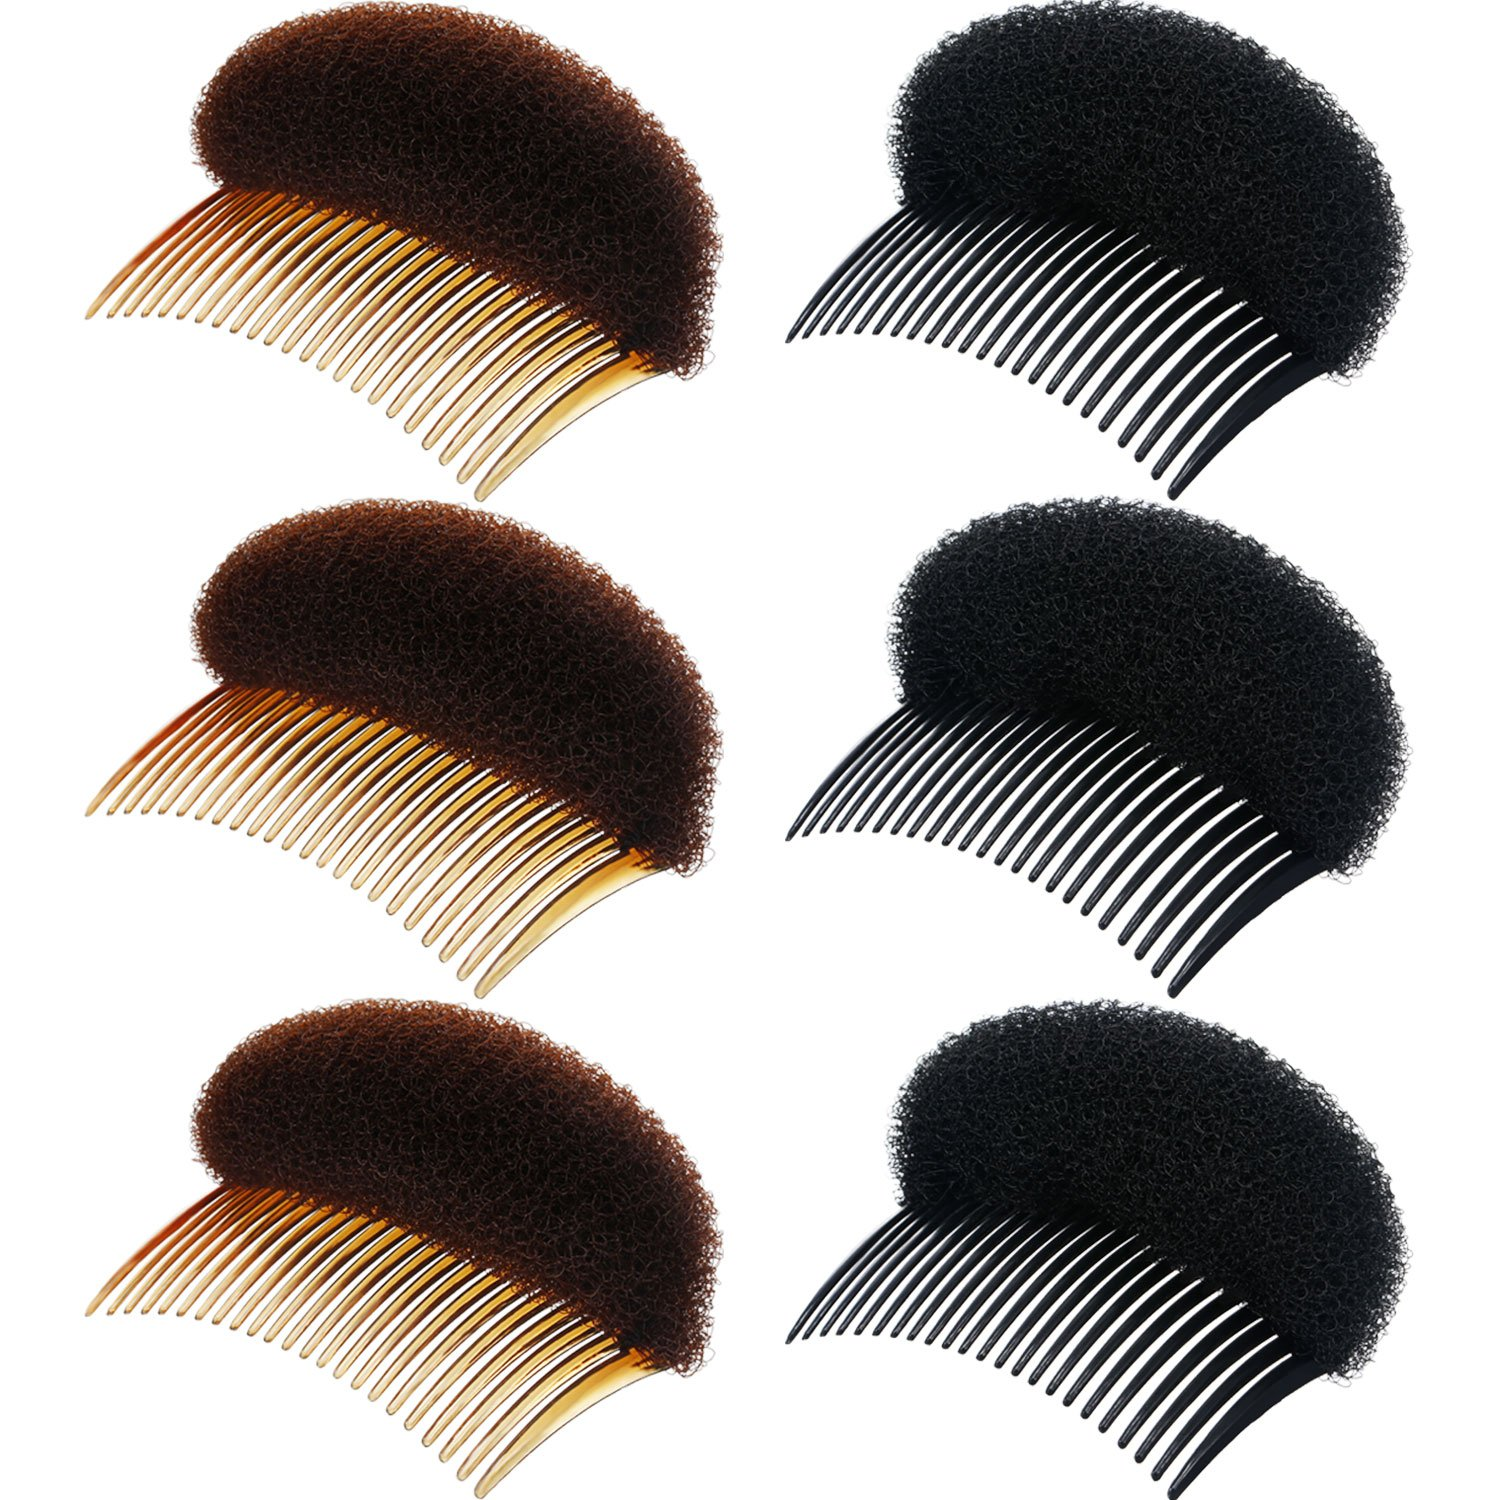 6 Pieces Lady Volume Hair Base Inserts Bump Up Hair Pads Stick Bun Maker Hair Styling Clip Chuangdi